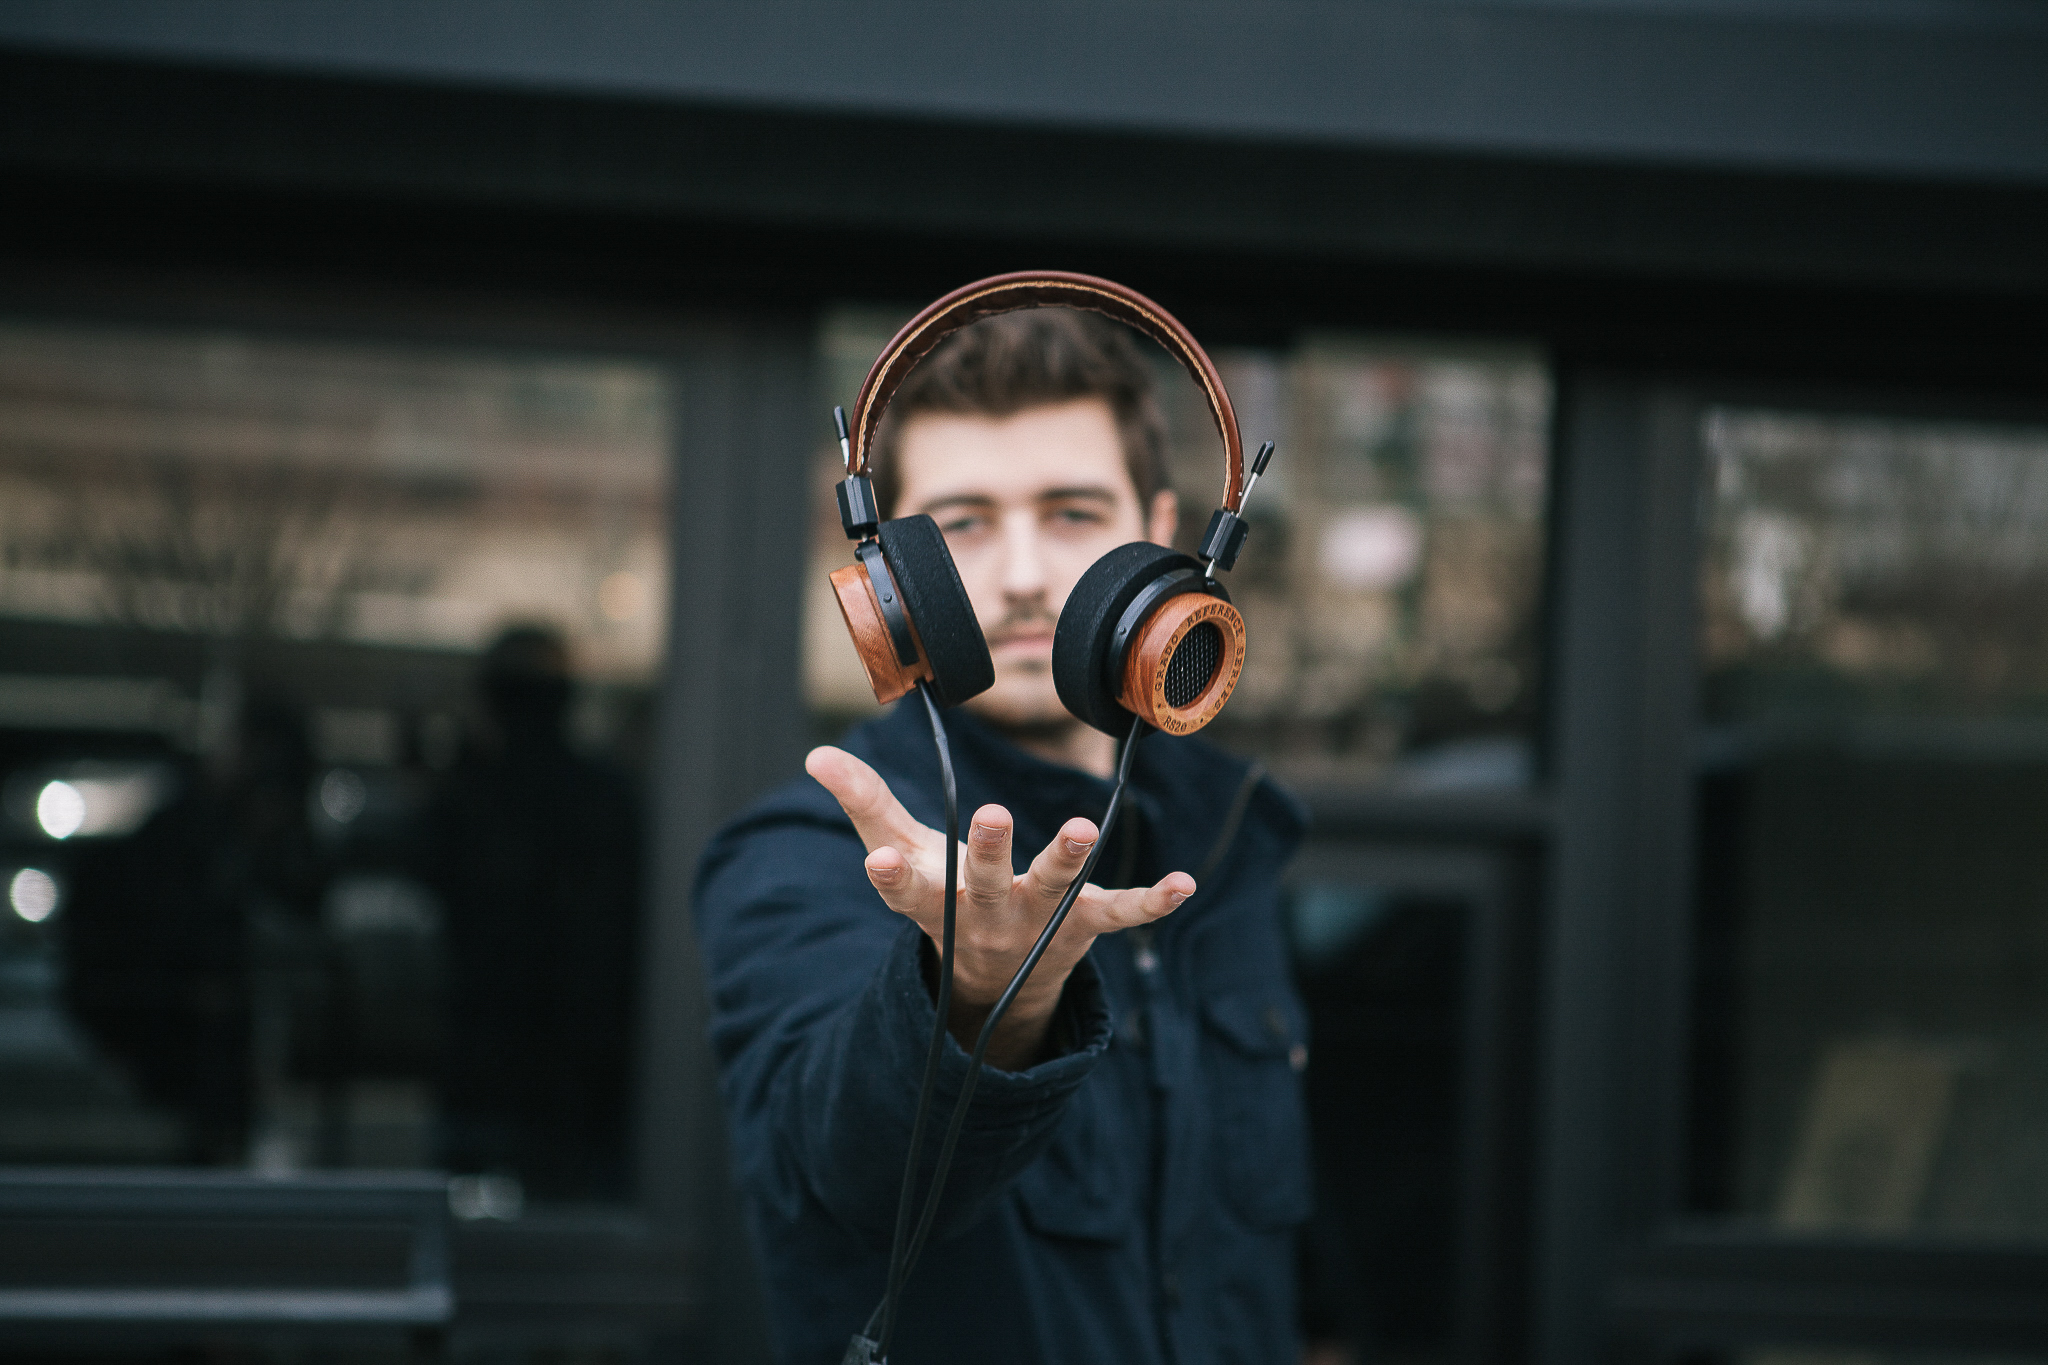 Copy of Jonathan Grado Levitaing Grado Headphones